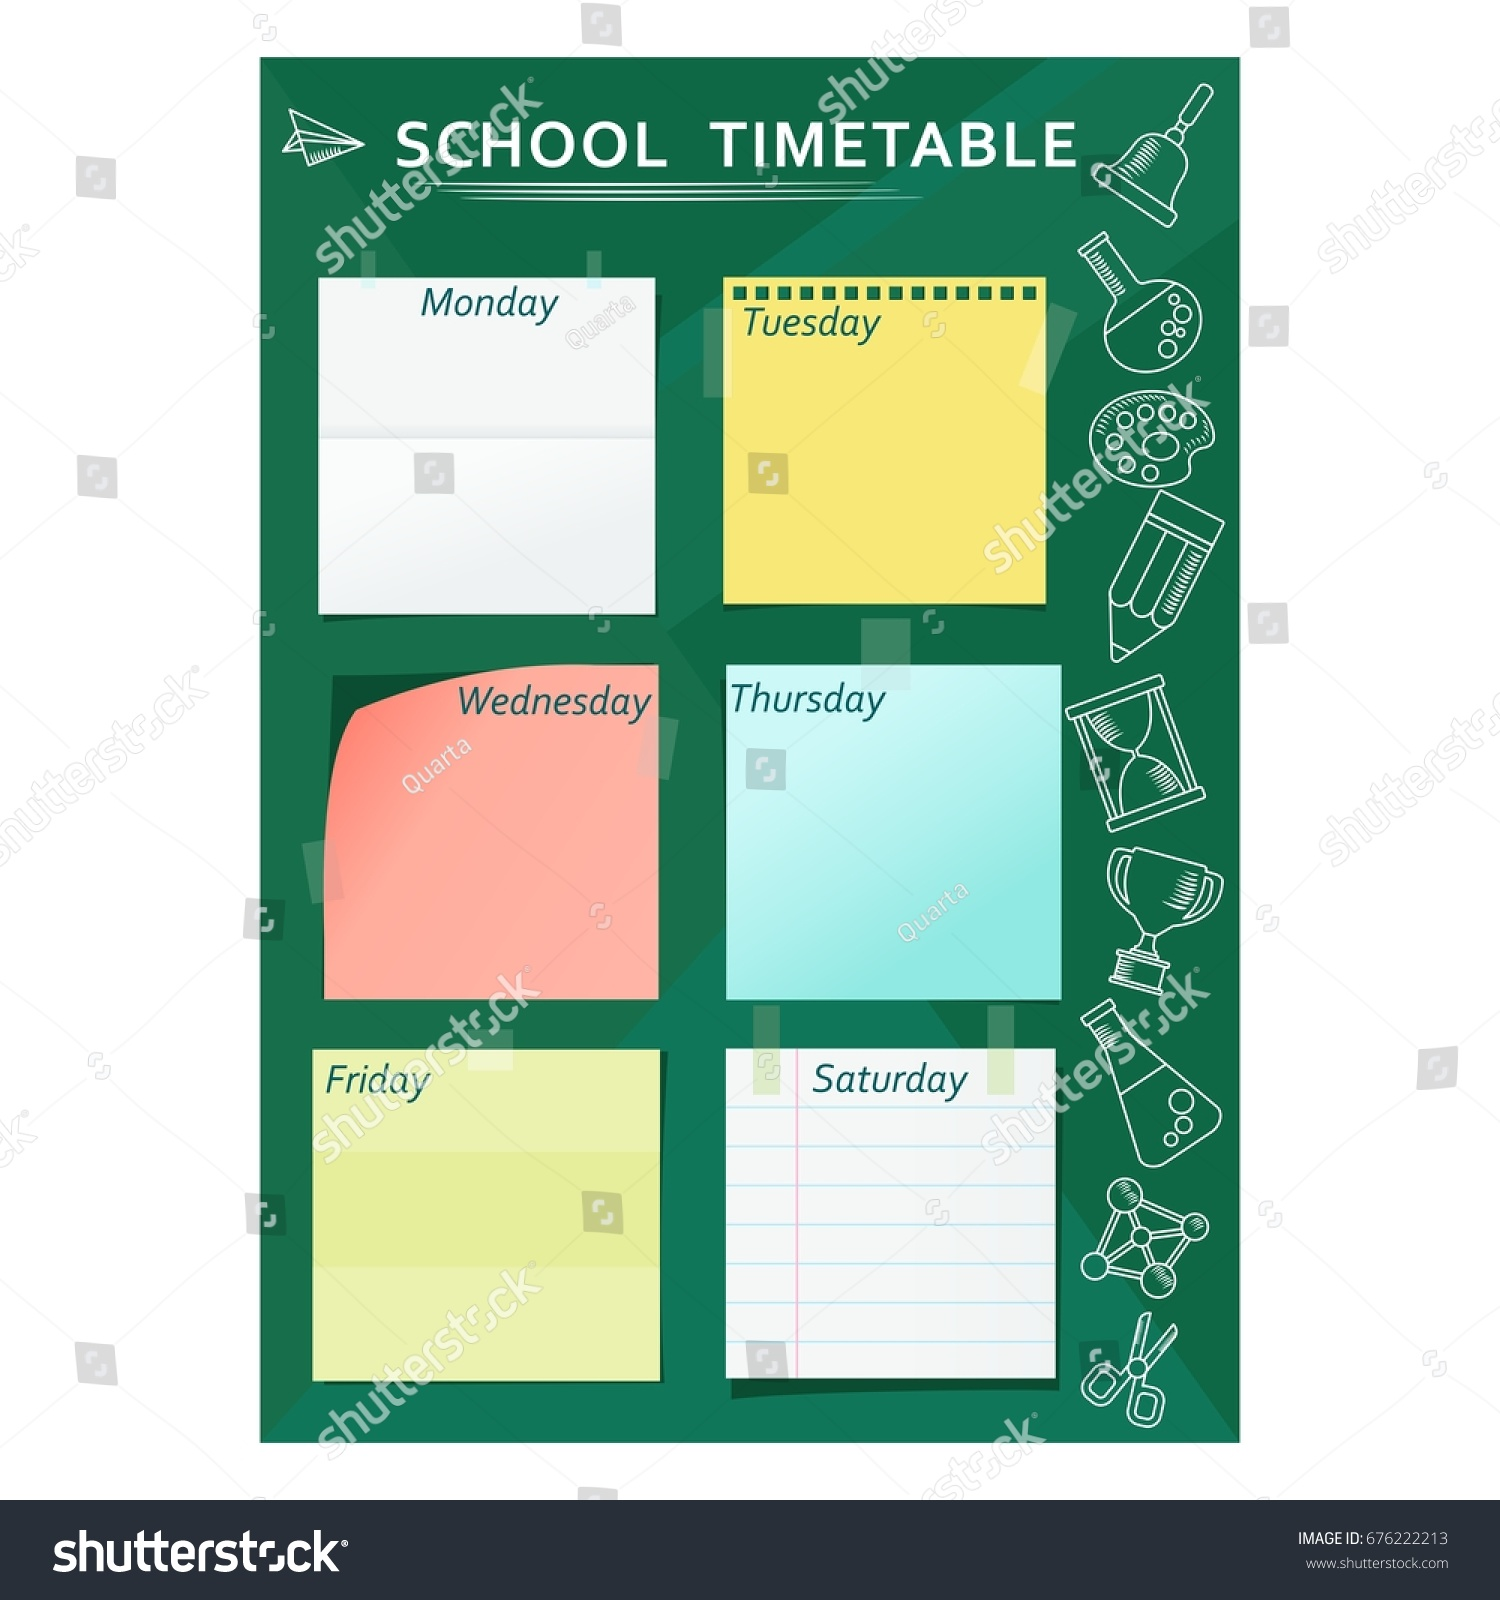 Blank School Timetable Template Eliolera – Timetable Template School